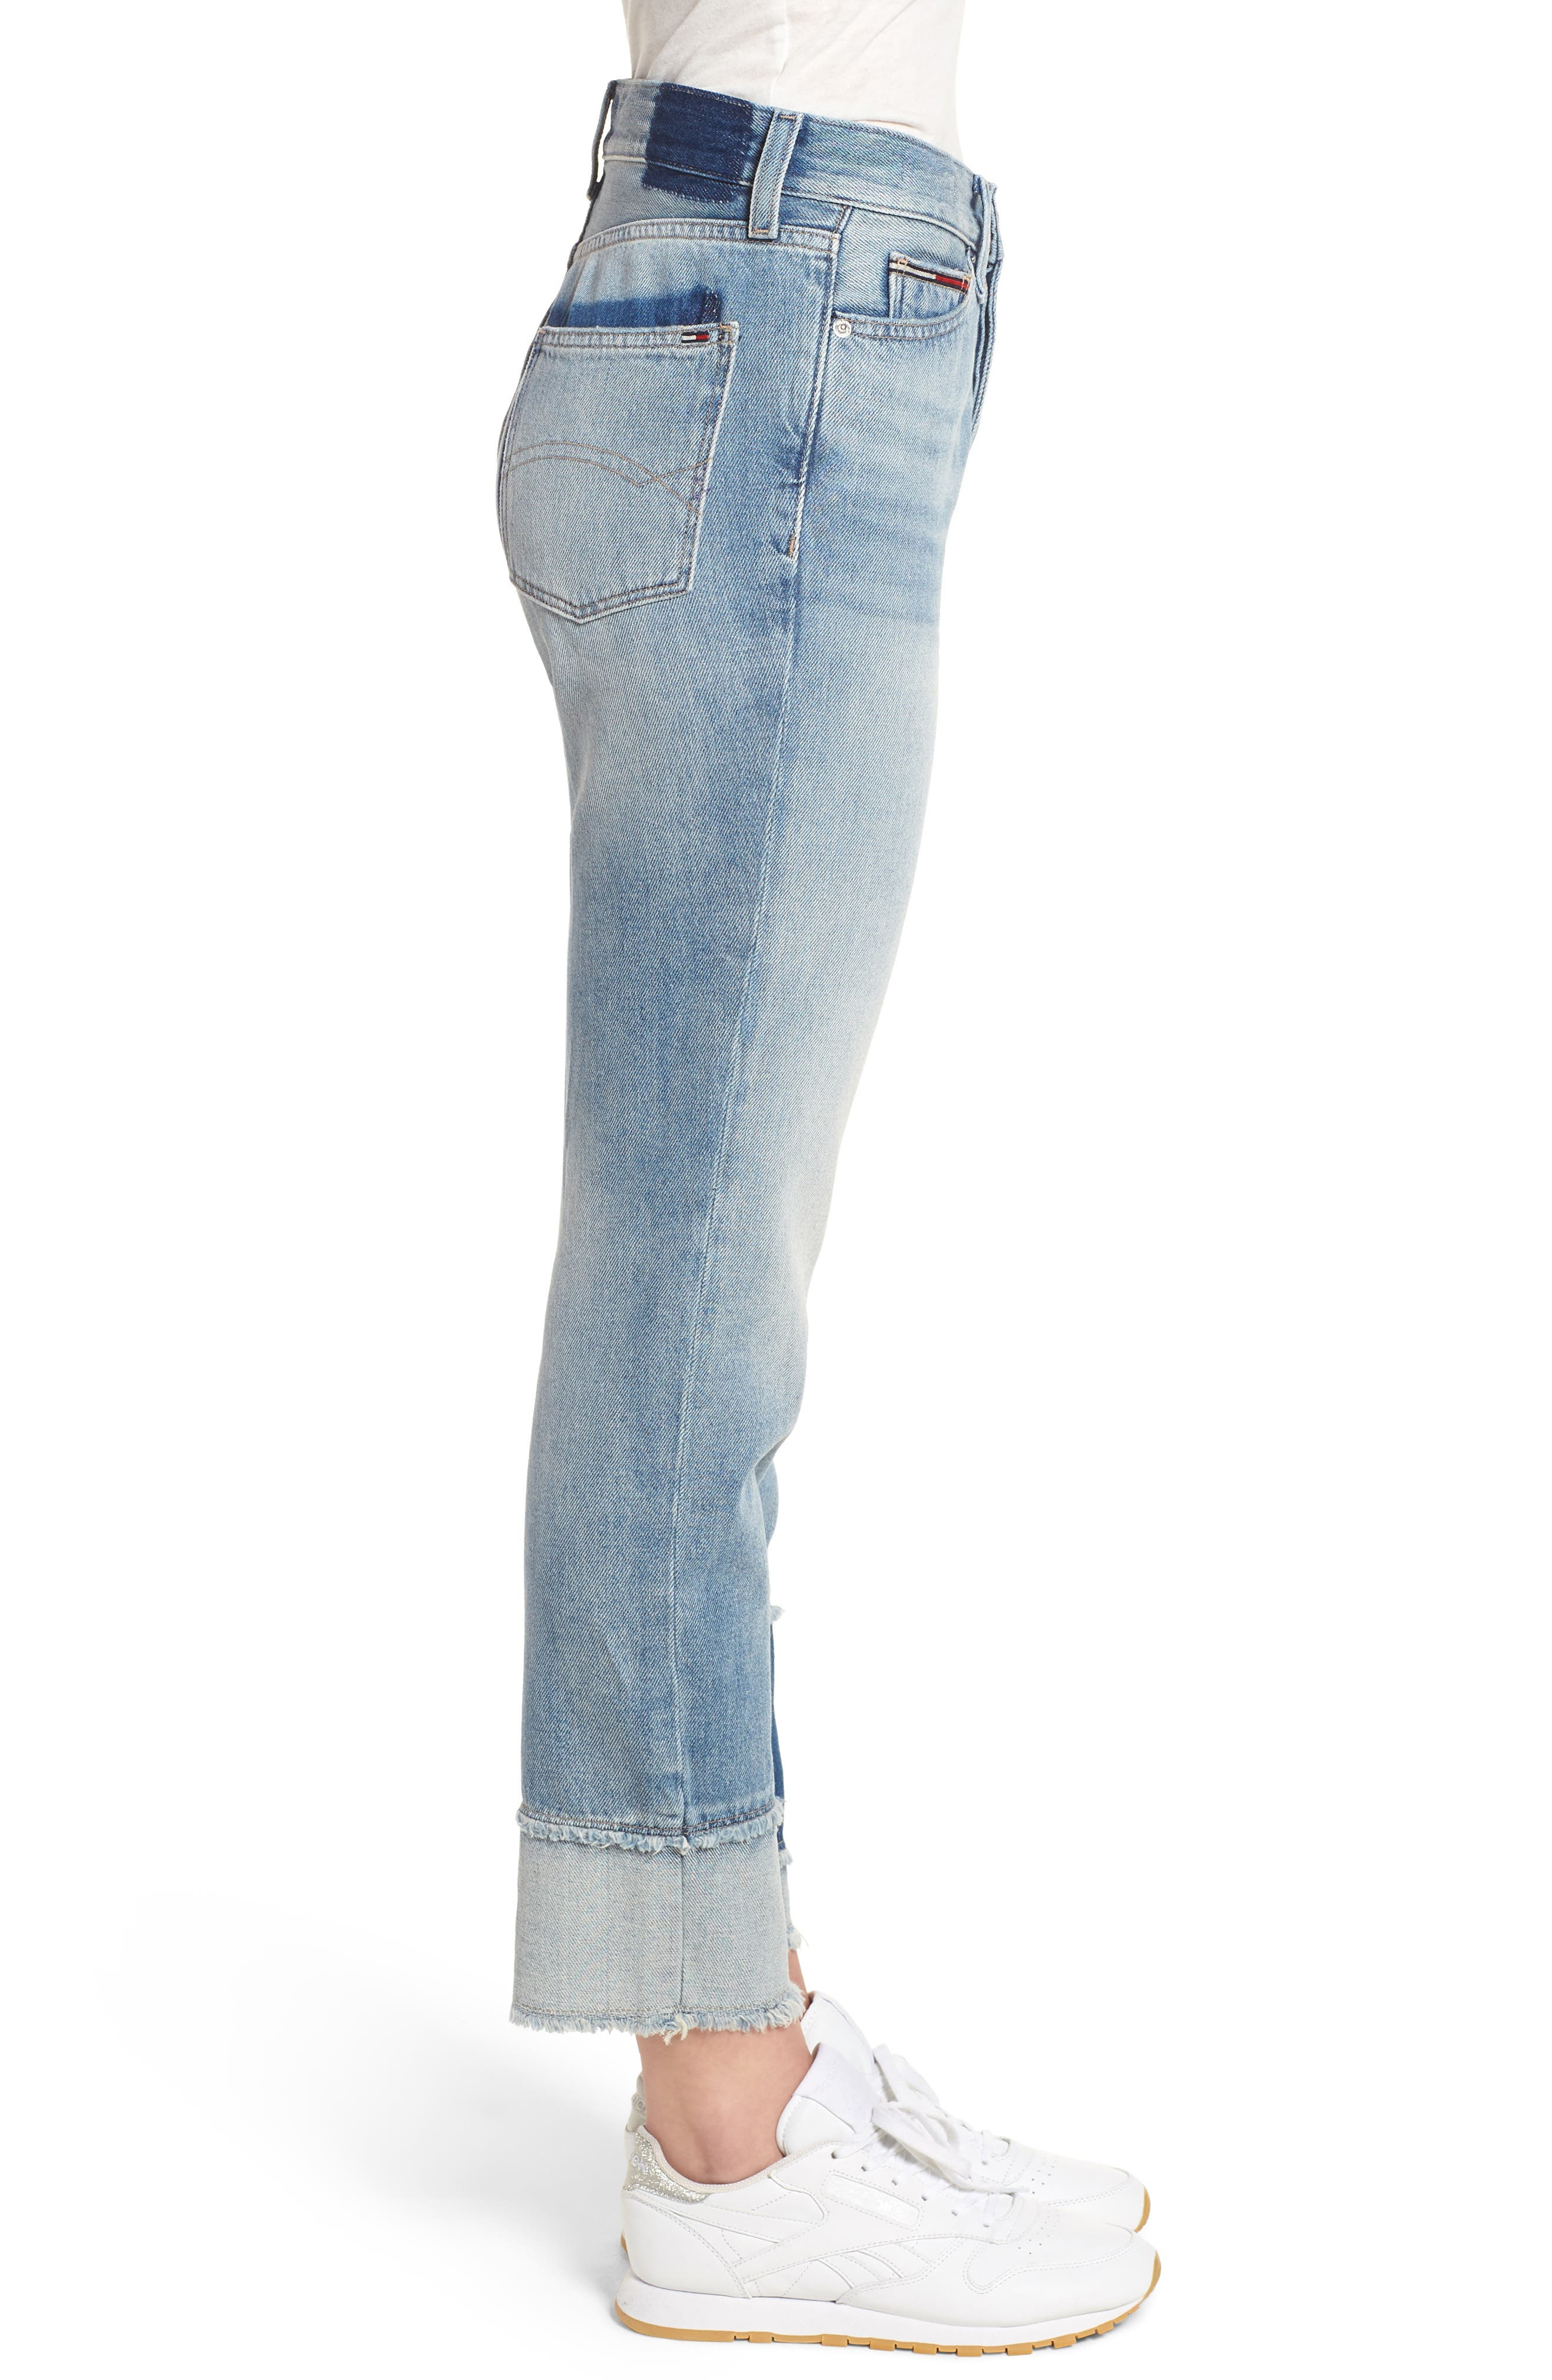 Izzy Layered Cuff Slim Leg Jeans,                             Alternate thumbnail 3, color,                             403